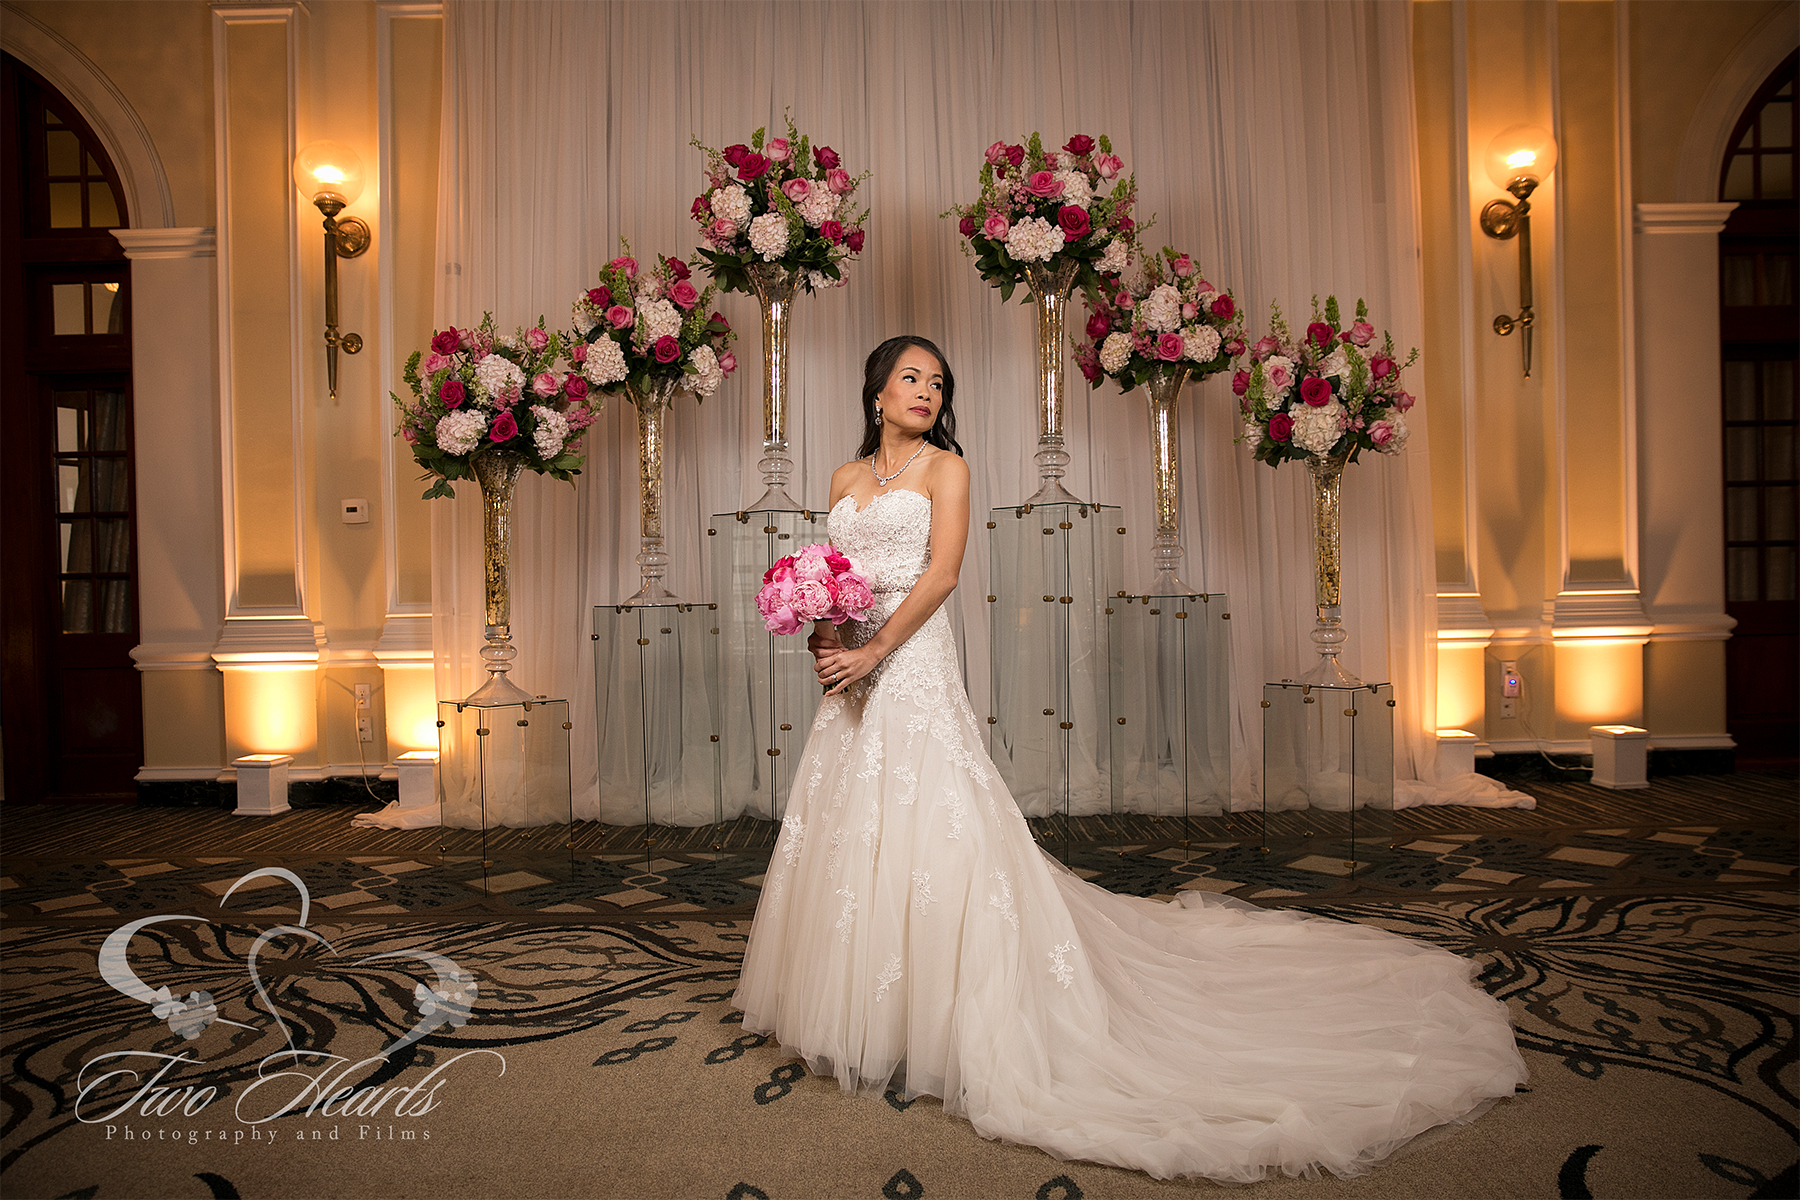 Photo Editor iPiccy: Free Online Photo Editing for You Wedding photography houston prices